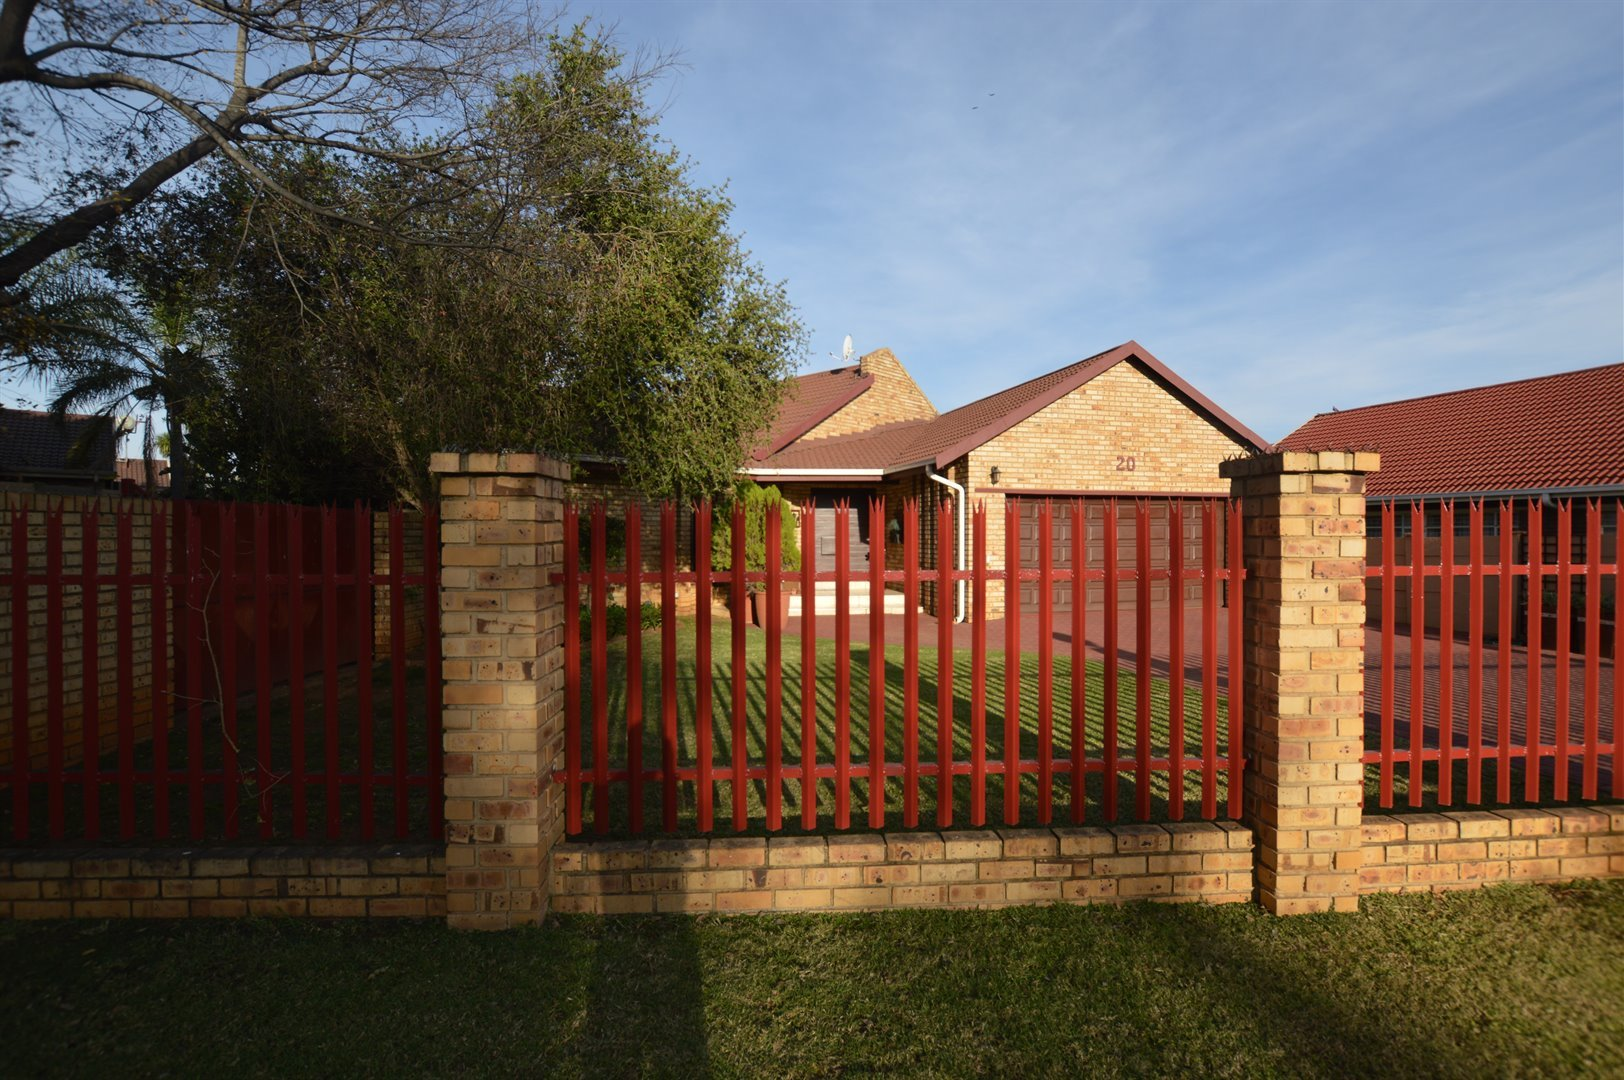 Vanderbijlpark, Vanderbijlpark Se3 Property  | Houses For Sale Vanderbijlpark Se3, Vanderbijlpark Se3, House 4 bedrooms property for sale Price:2,490,000